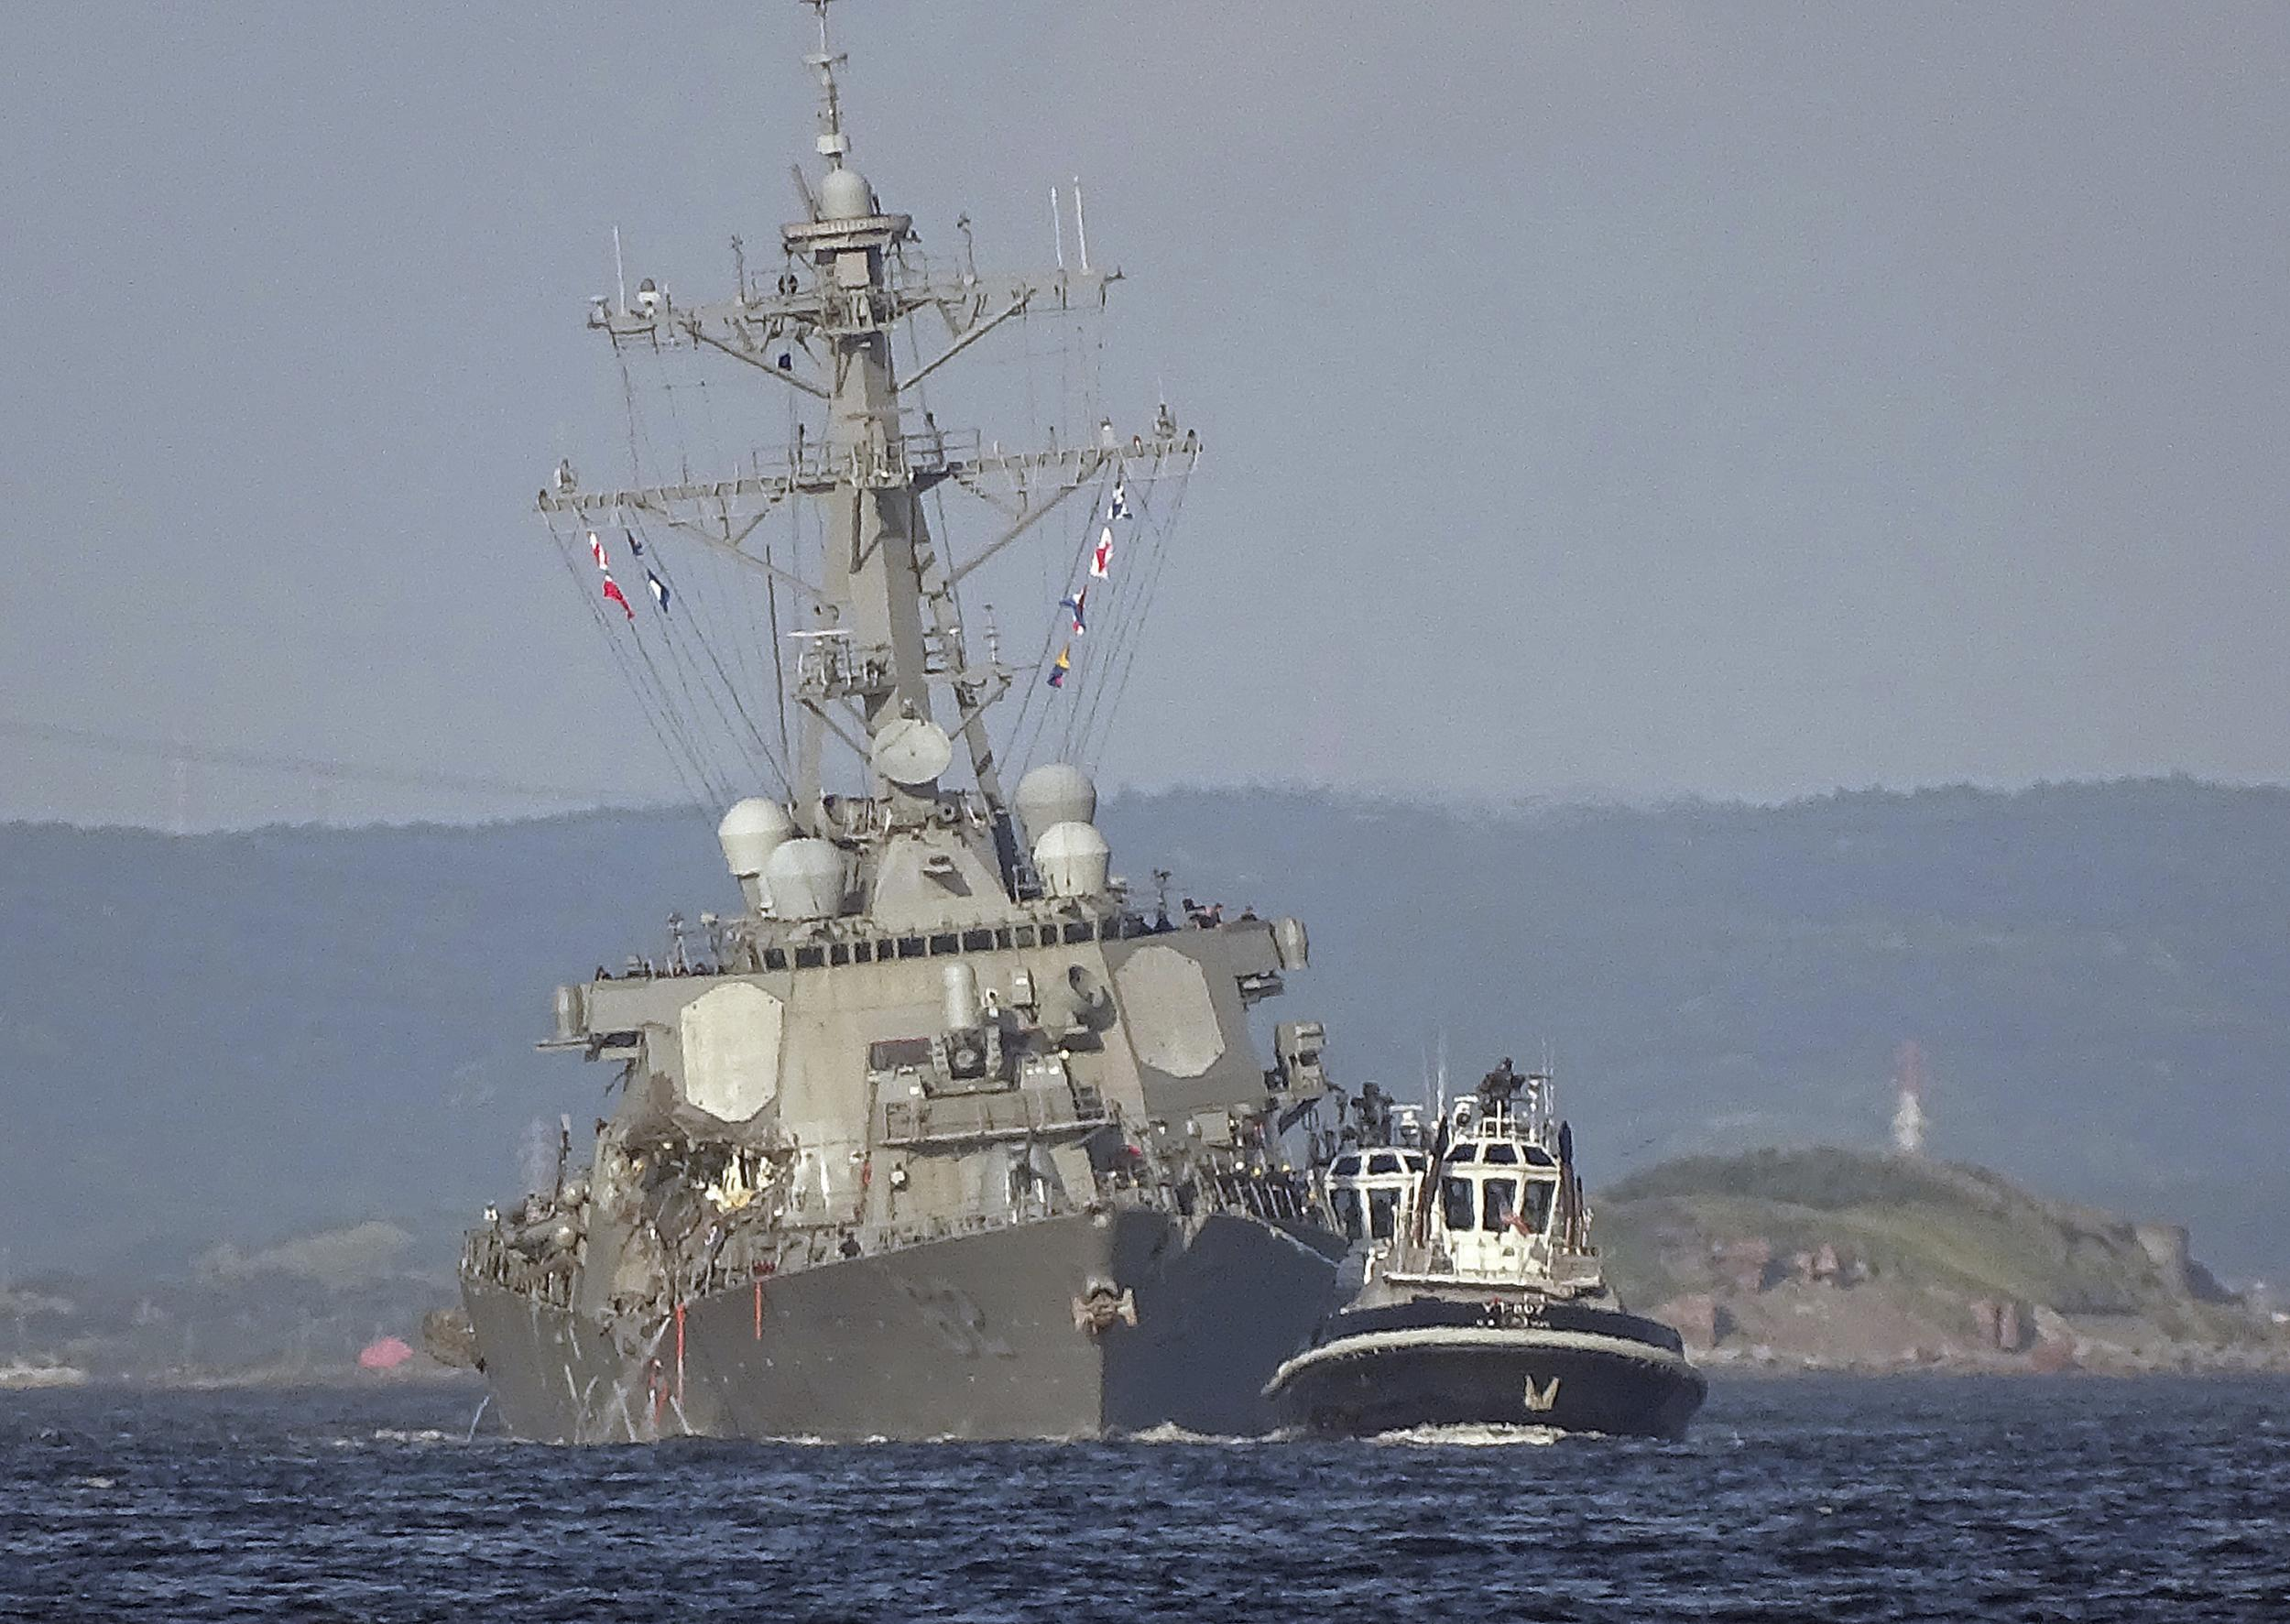 - uss fitzgerald navy japan sinking - US Navy stops search for seven missing sailors after bodies found aboard stricken USS Fitzgerald